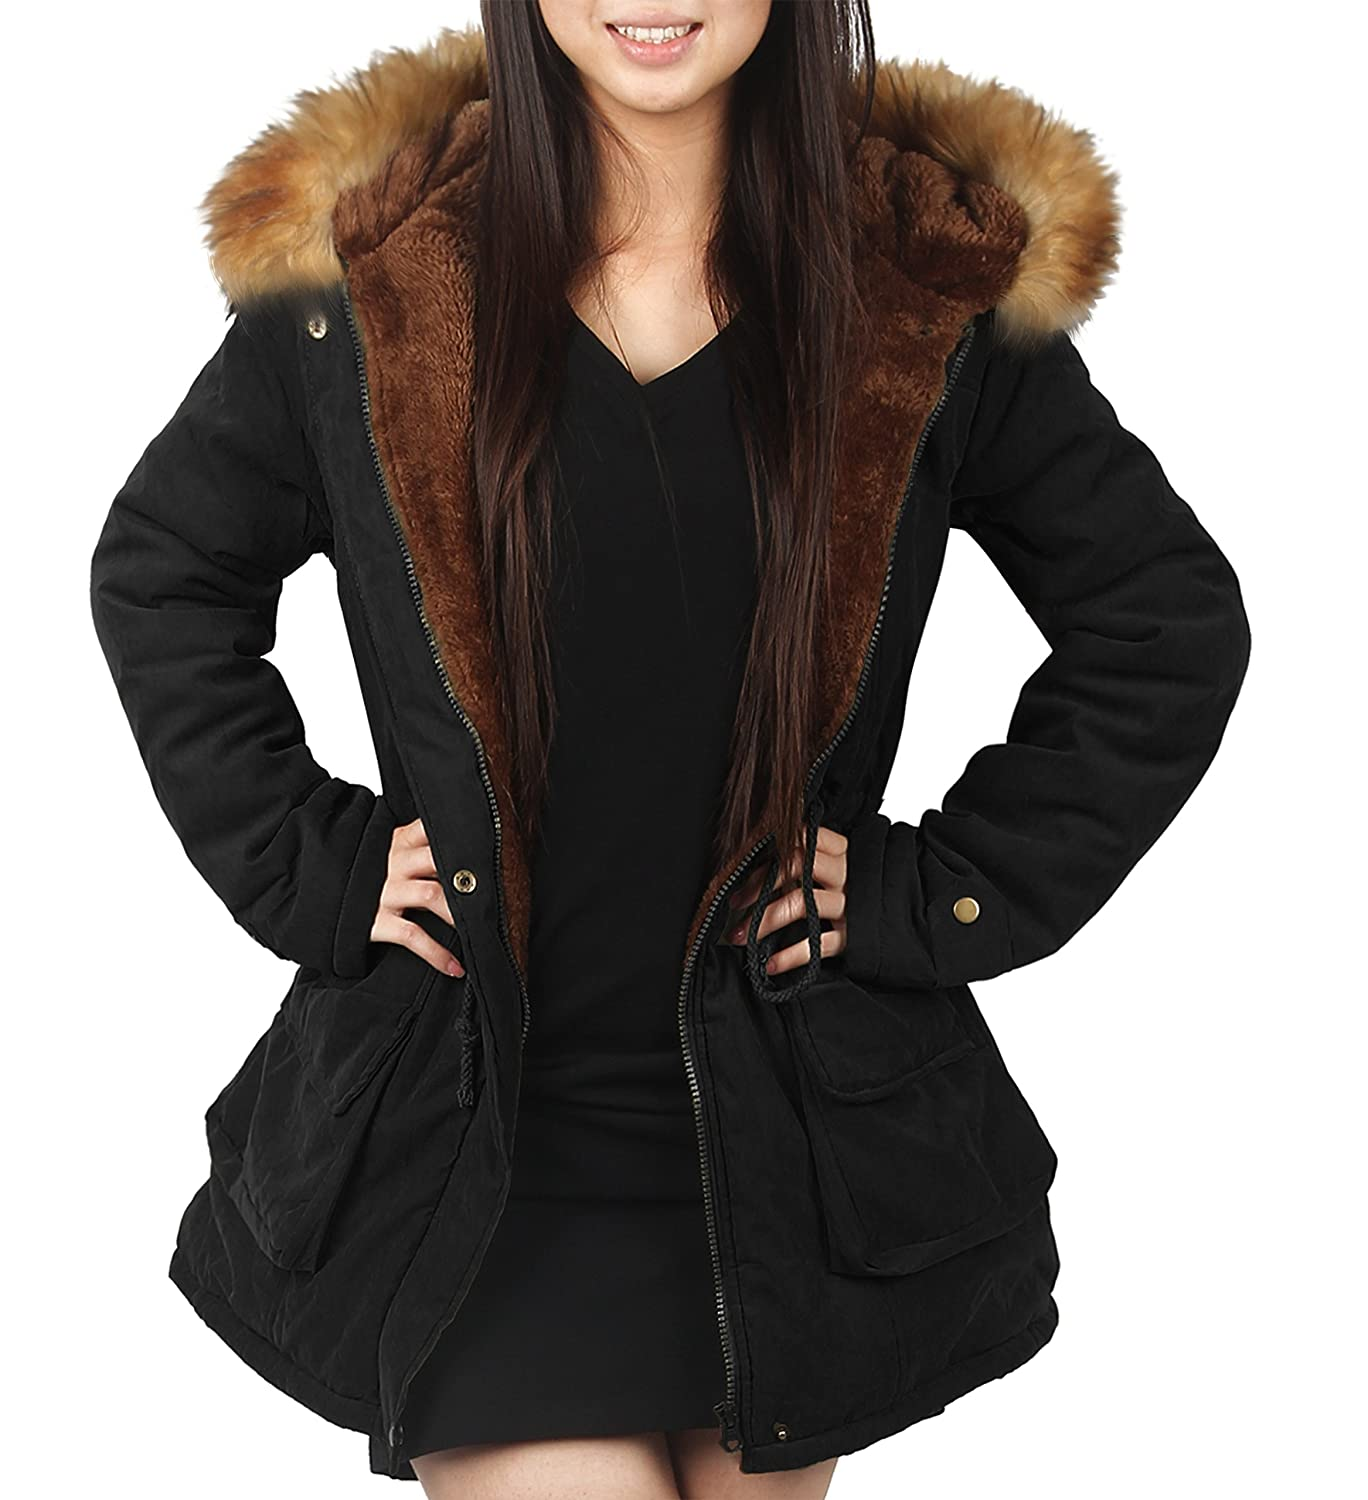 4HOW Womens Parka Jacket Hooded Winter Coats Faux Fur Outdoor Coat Army Green Black